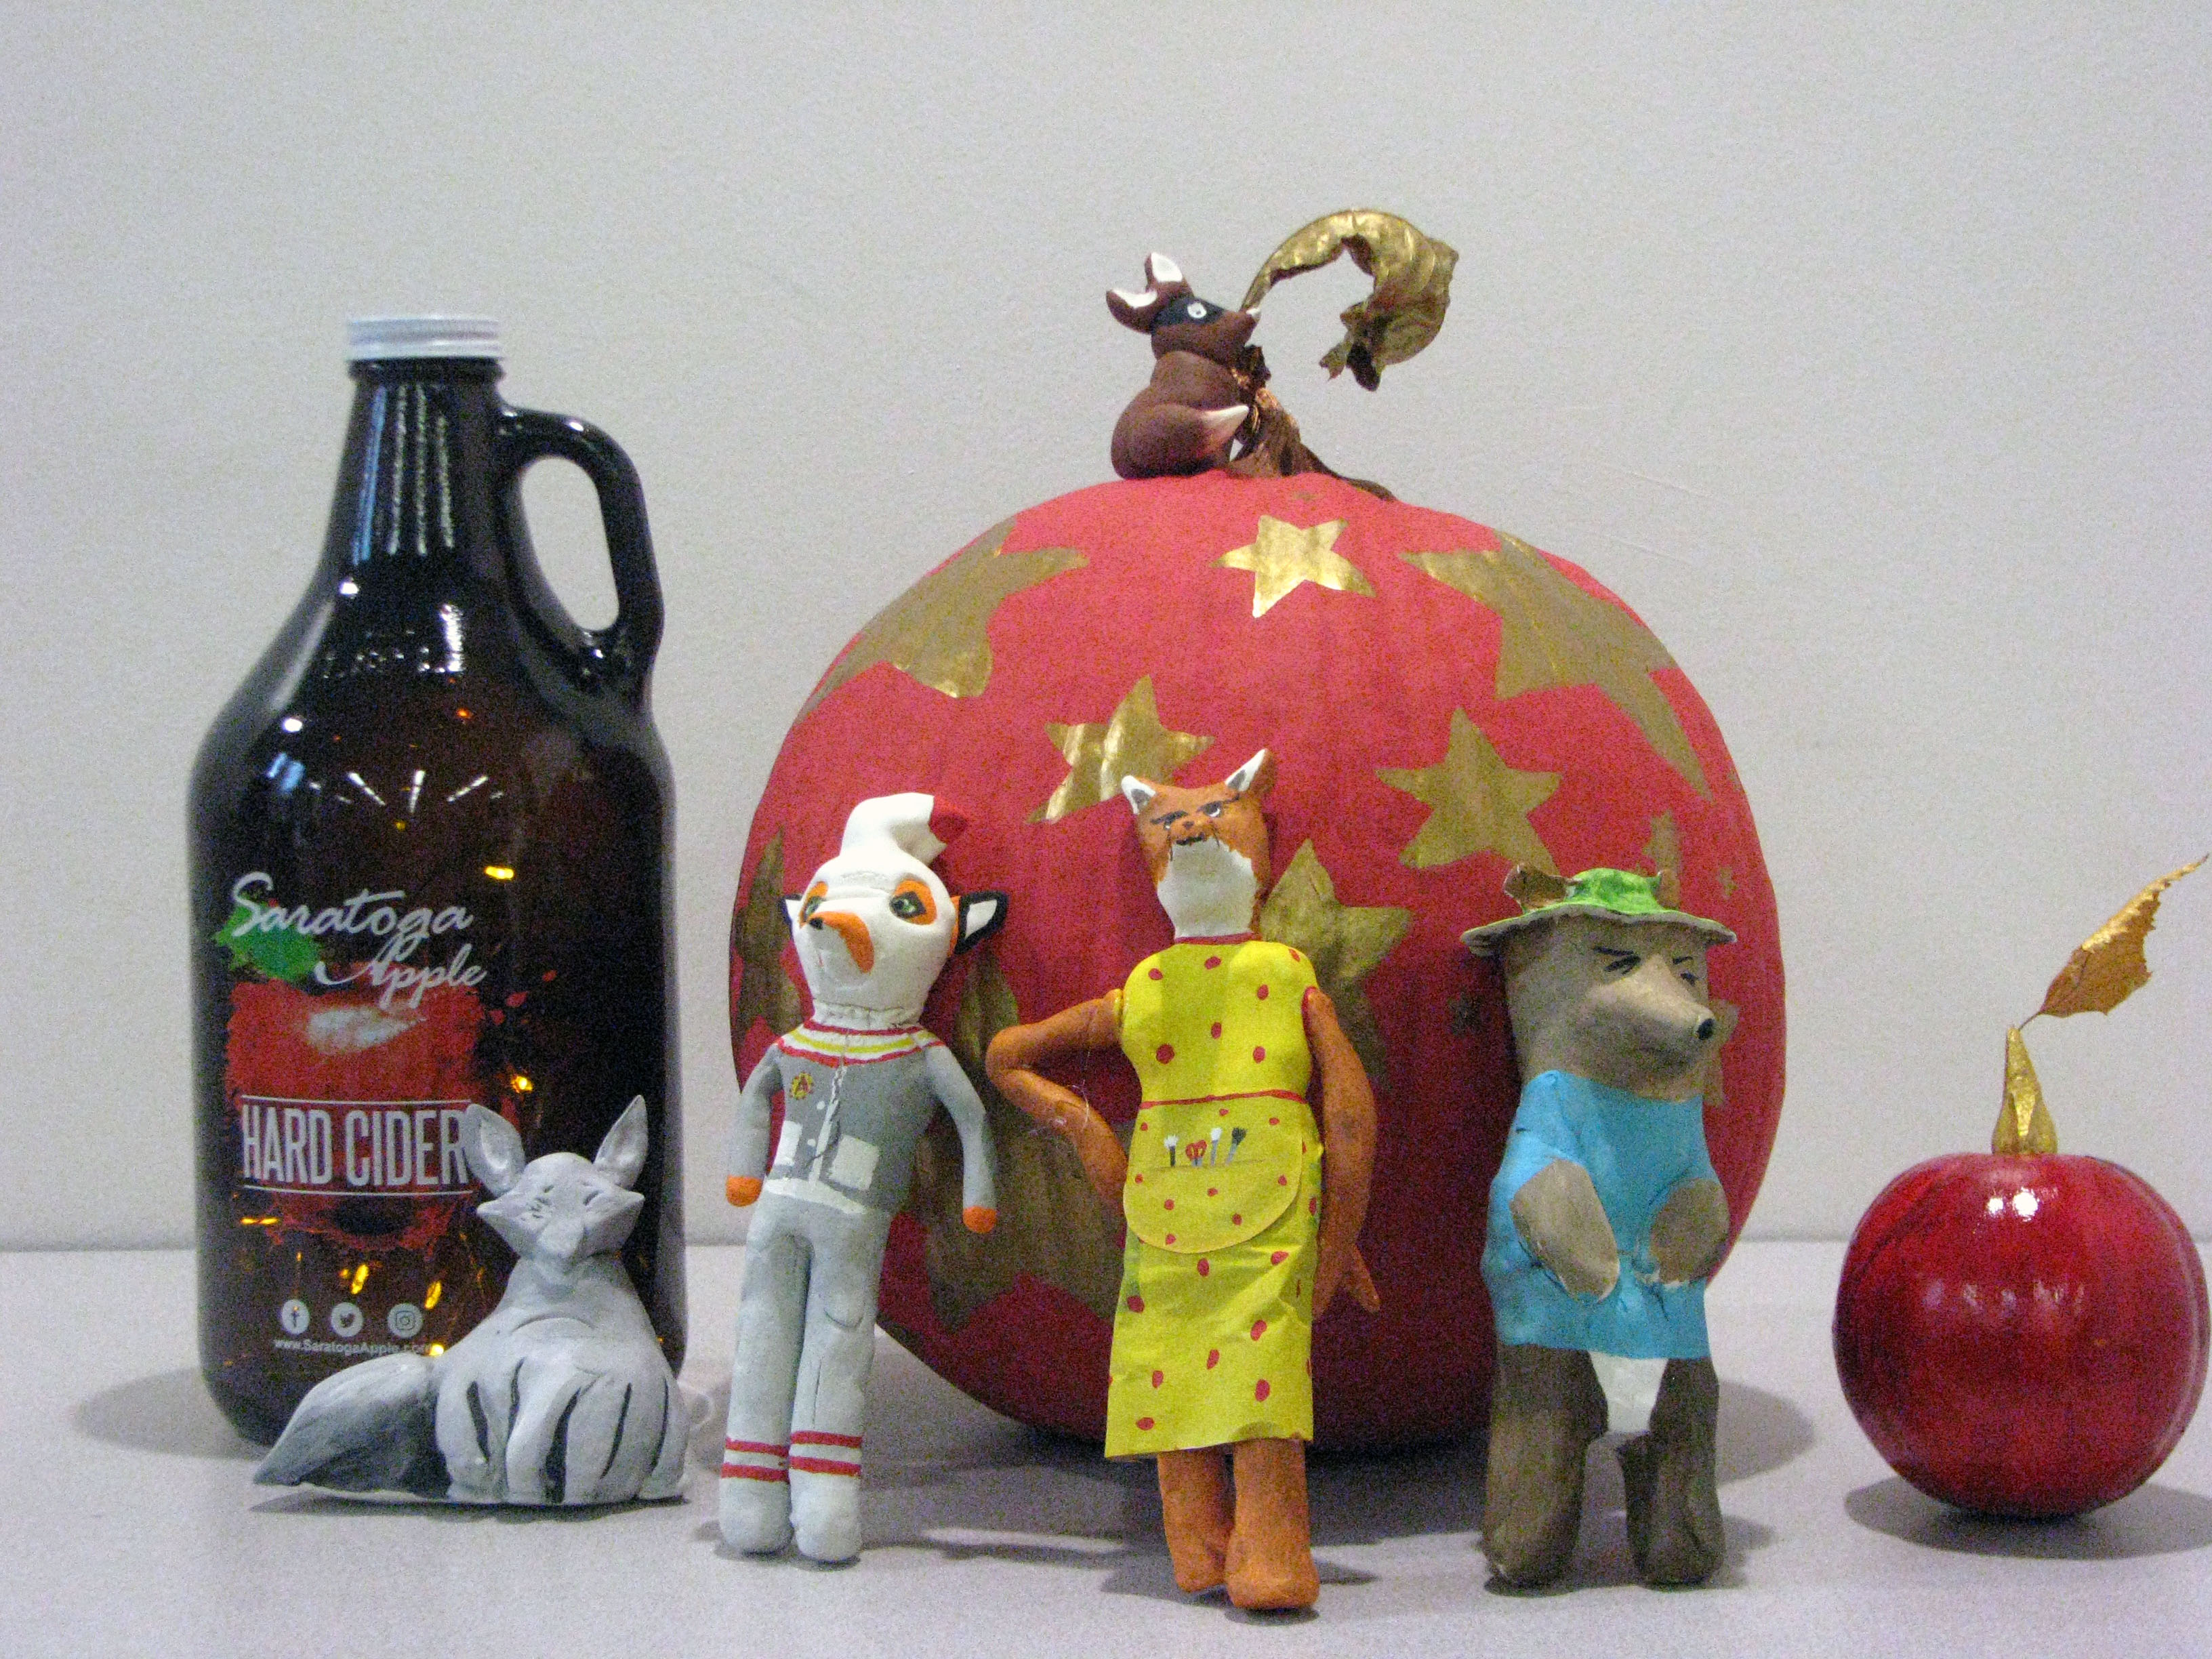 Painted pumpkin with clay, animal figures